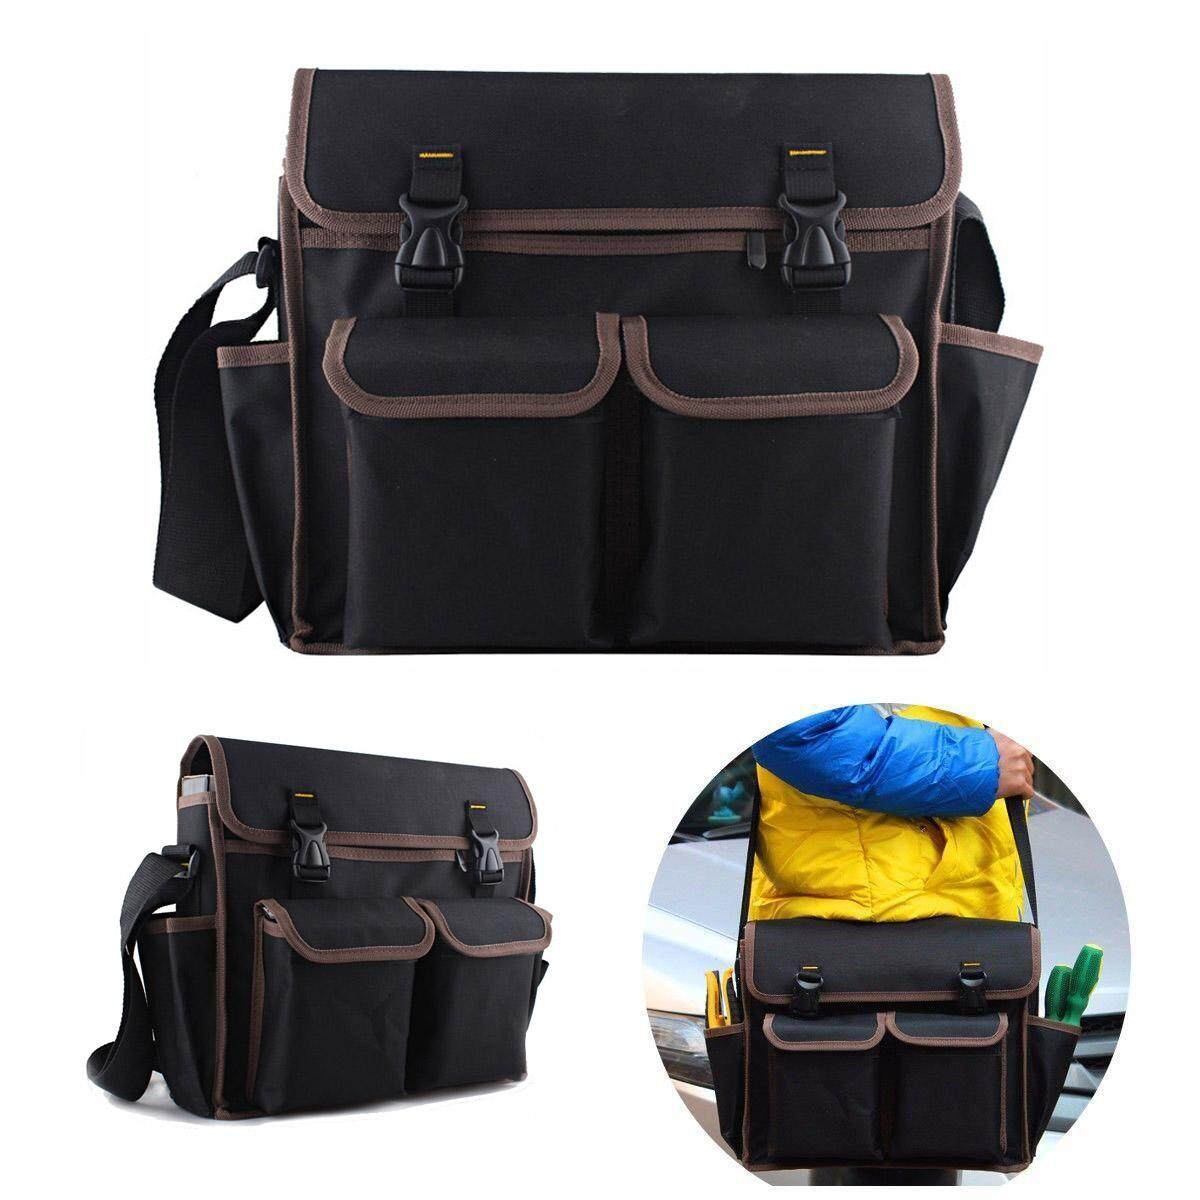 ส่วนลด Jvgood Hardware Tool Kit Bag Water Resistant Shoulder Strap Tool Backpack Collection